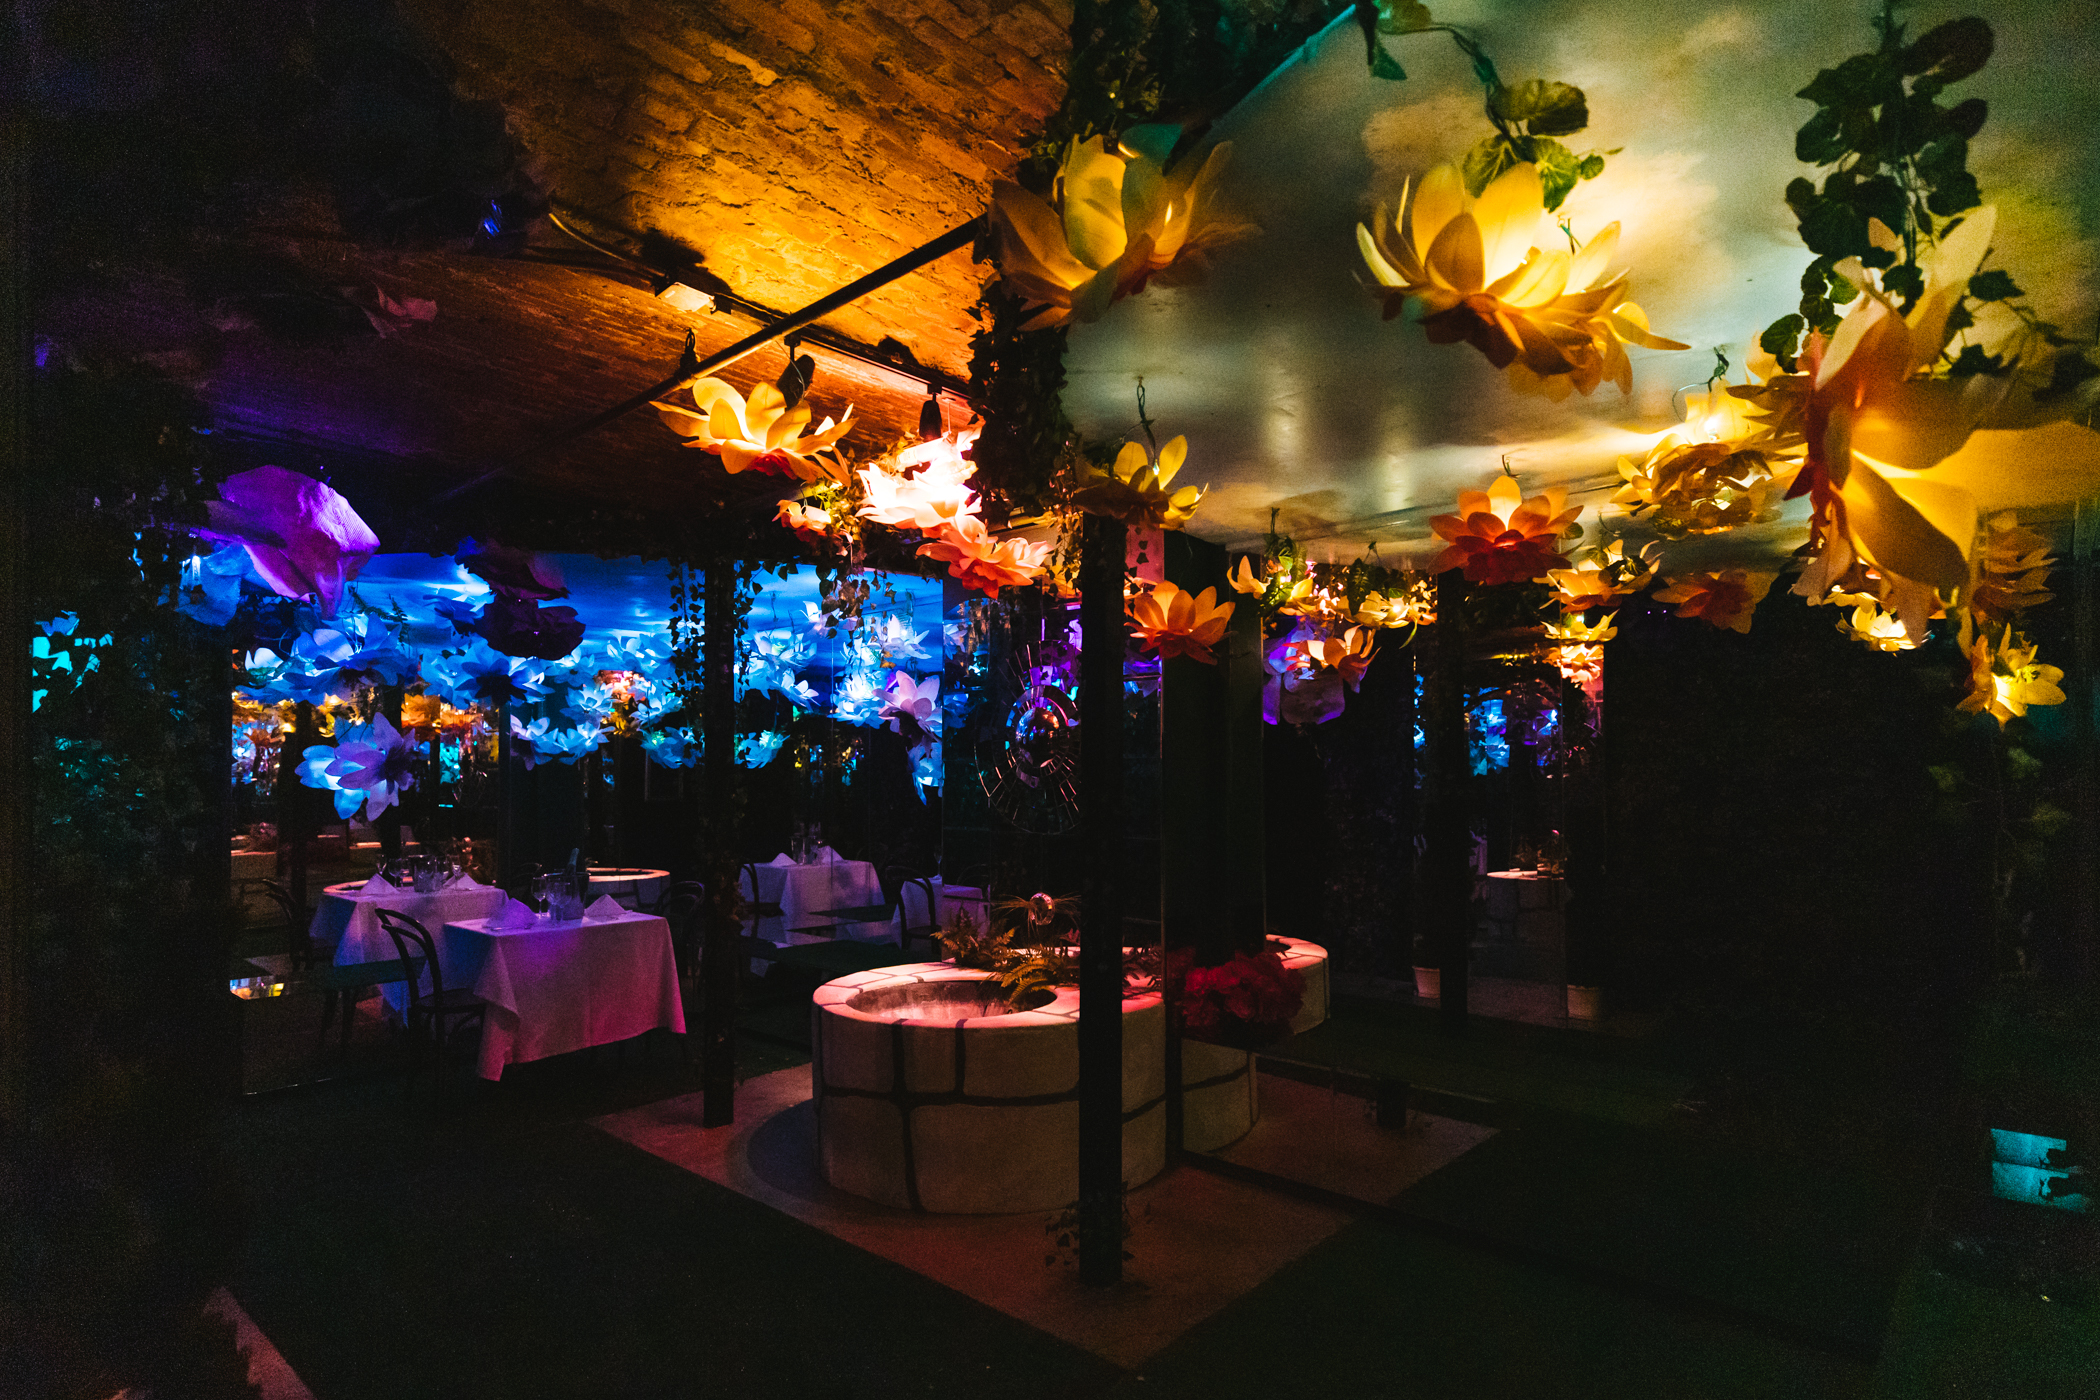 "Valentine's Day is right around the corner, and nothing screams ""love"" more than a romantic dinner for two in{&nbsp;}<a  href=""https://www.cafenordo.com/"" target=""_blank"">Cafe Nordo's</a>{&nbsp;}stunning Infinity Garden room - and you actually could spend V-Day doing just that!{&nbsp;}Cafe Nordo is auctioning off this dinner-for-two package through their virtual annual fundraiser,{&nbsp;}<a  href=""https://secure.qgiv.com/event/kiss21/"" target=""_blank"">KISS: Live from our Pillow Fort</a>, being held Saturday, Jan. 30. Interested parties can register through{&nbsp;}the Givi app and place a bid. (Image: Sunita Martini / Seattle Refined)"